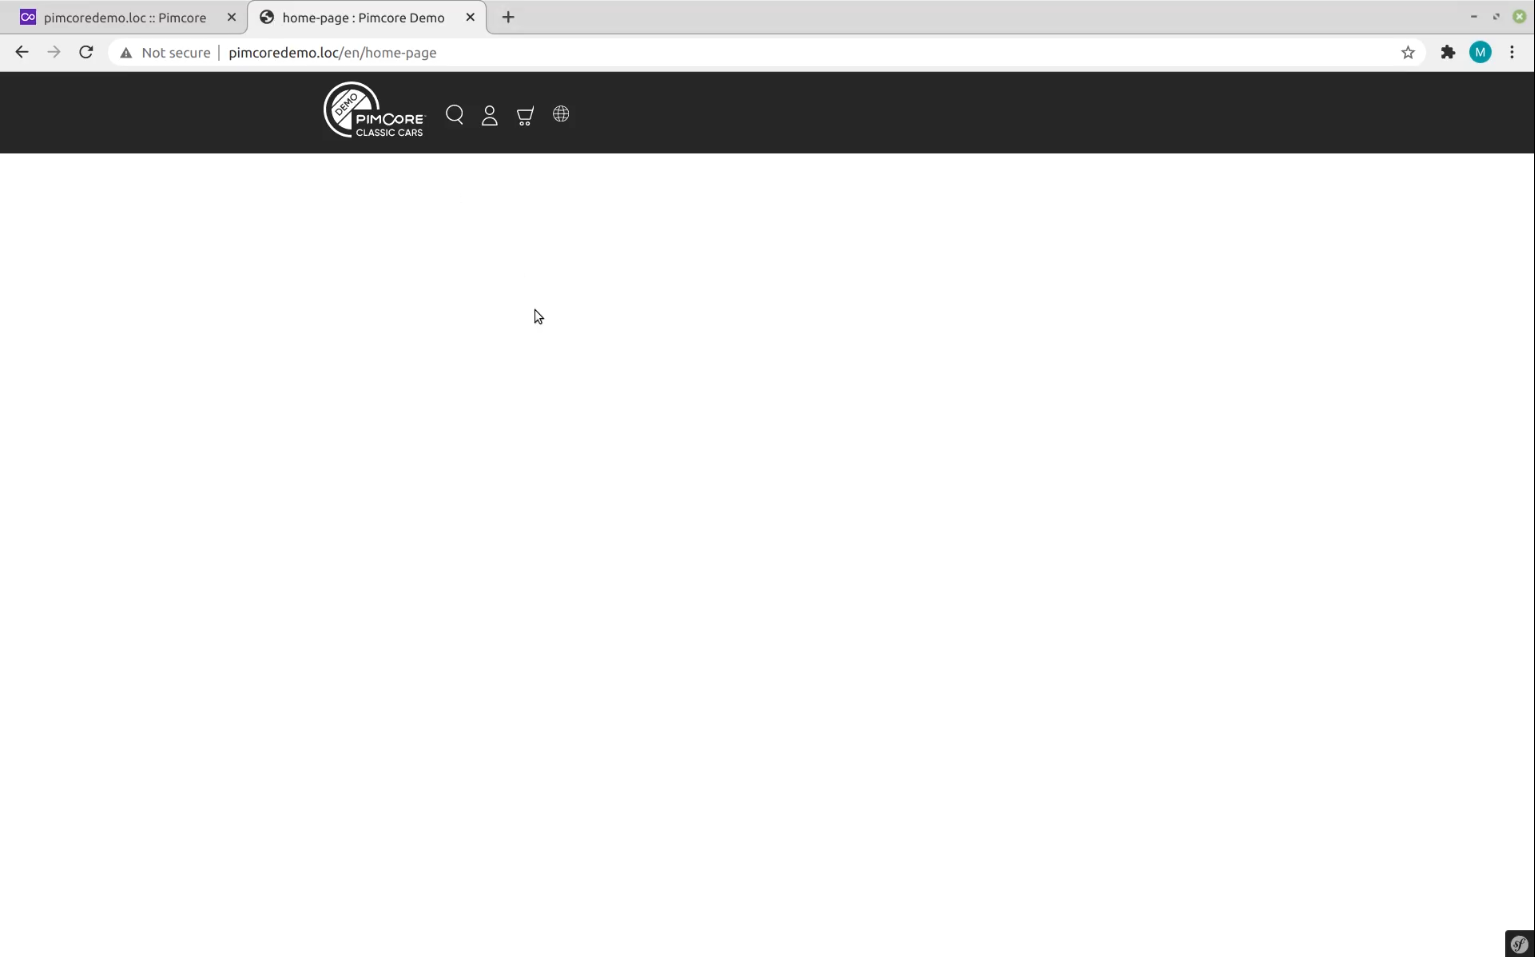 Preview of blank landing page in Pimcore